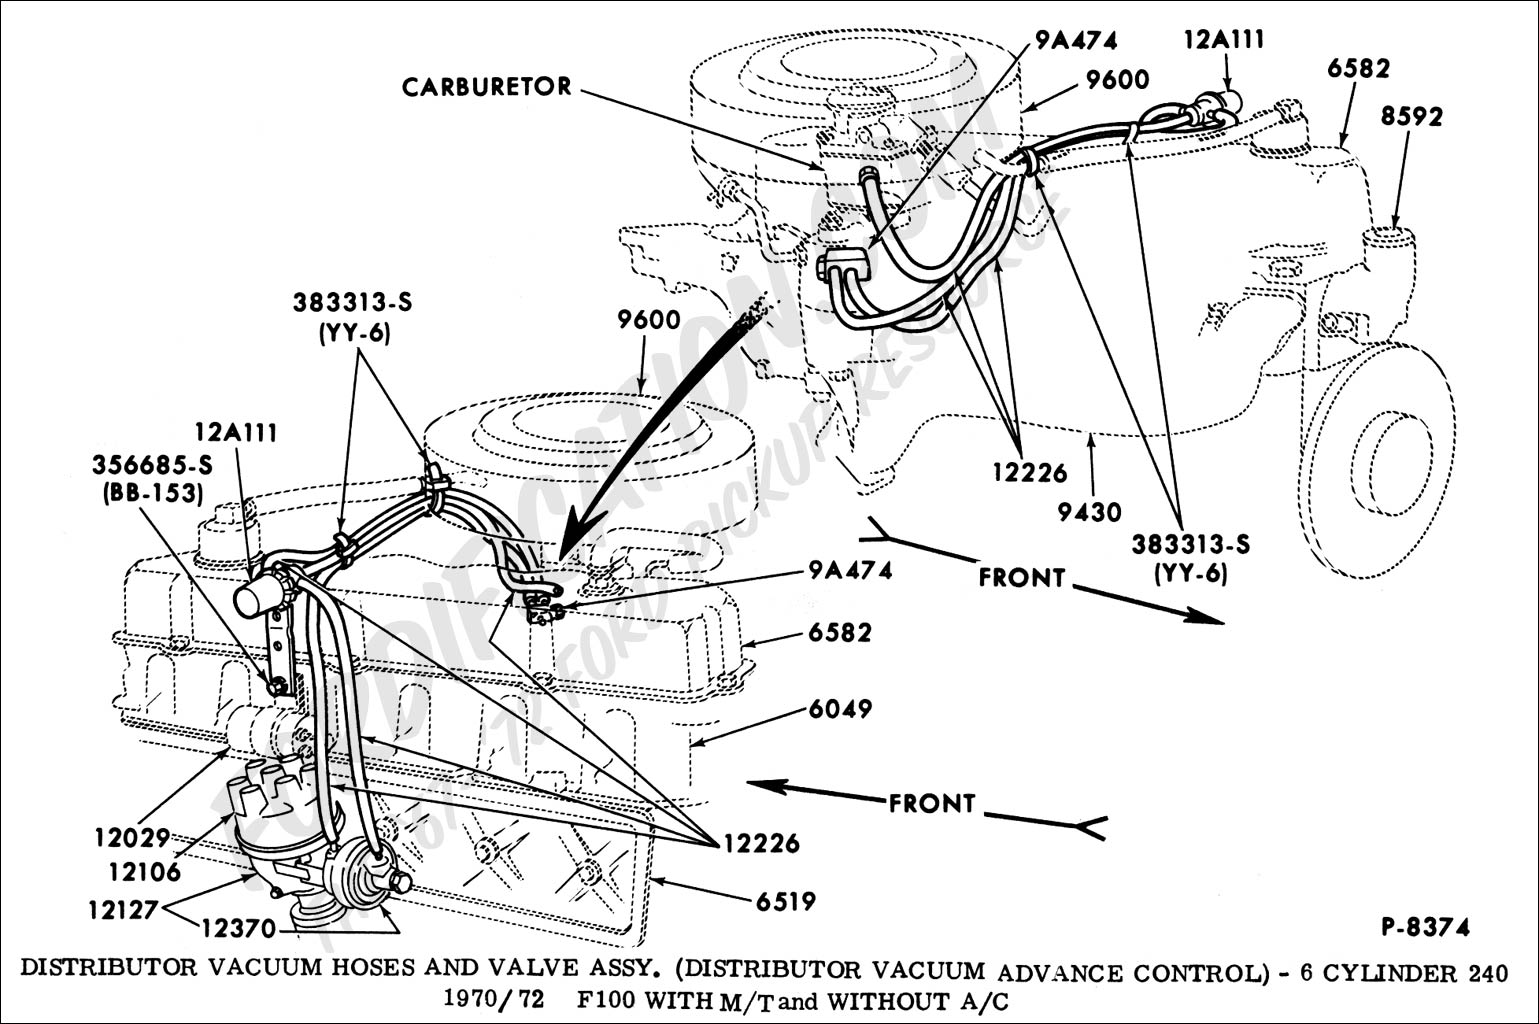 WRG-8579] 390 F100 Wiring Diagram 75 on